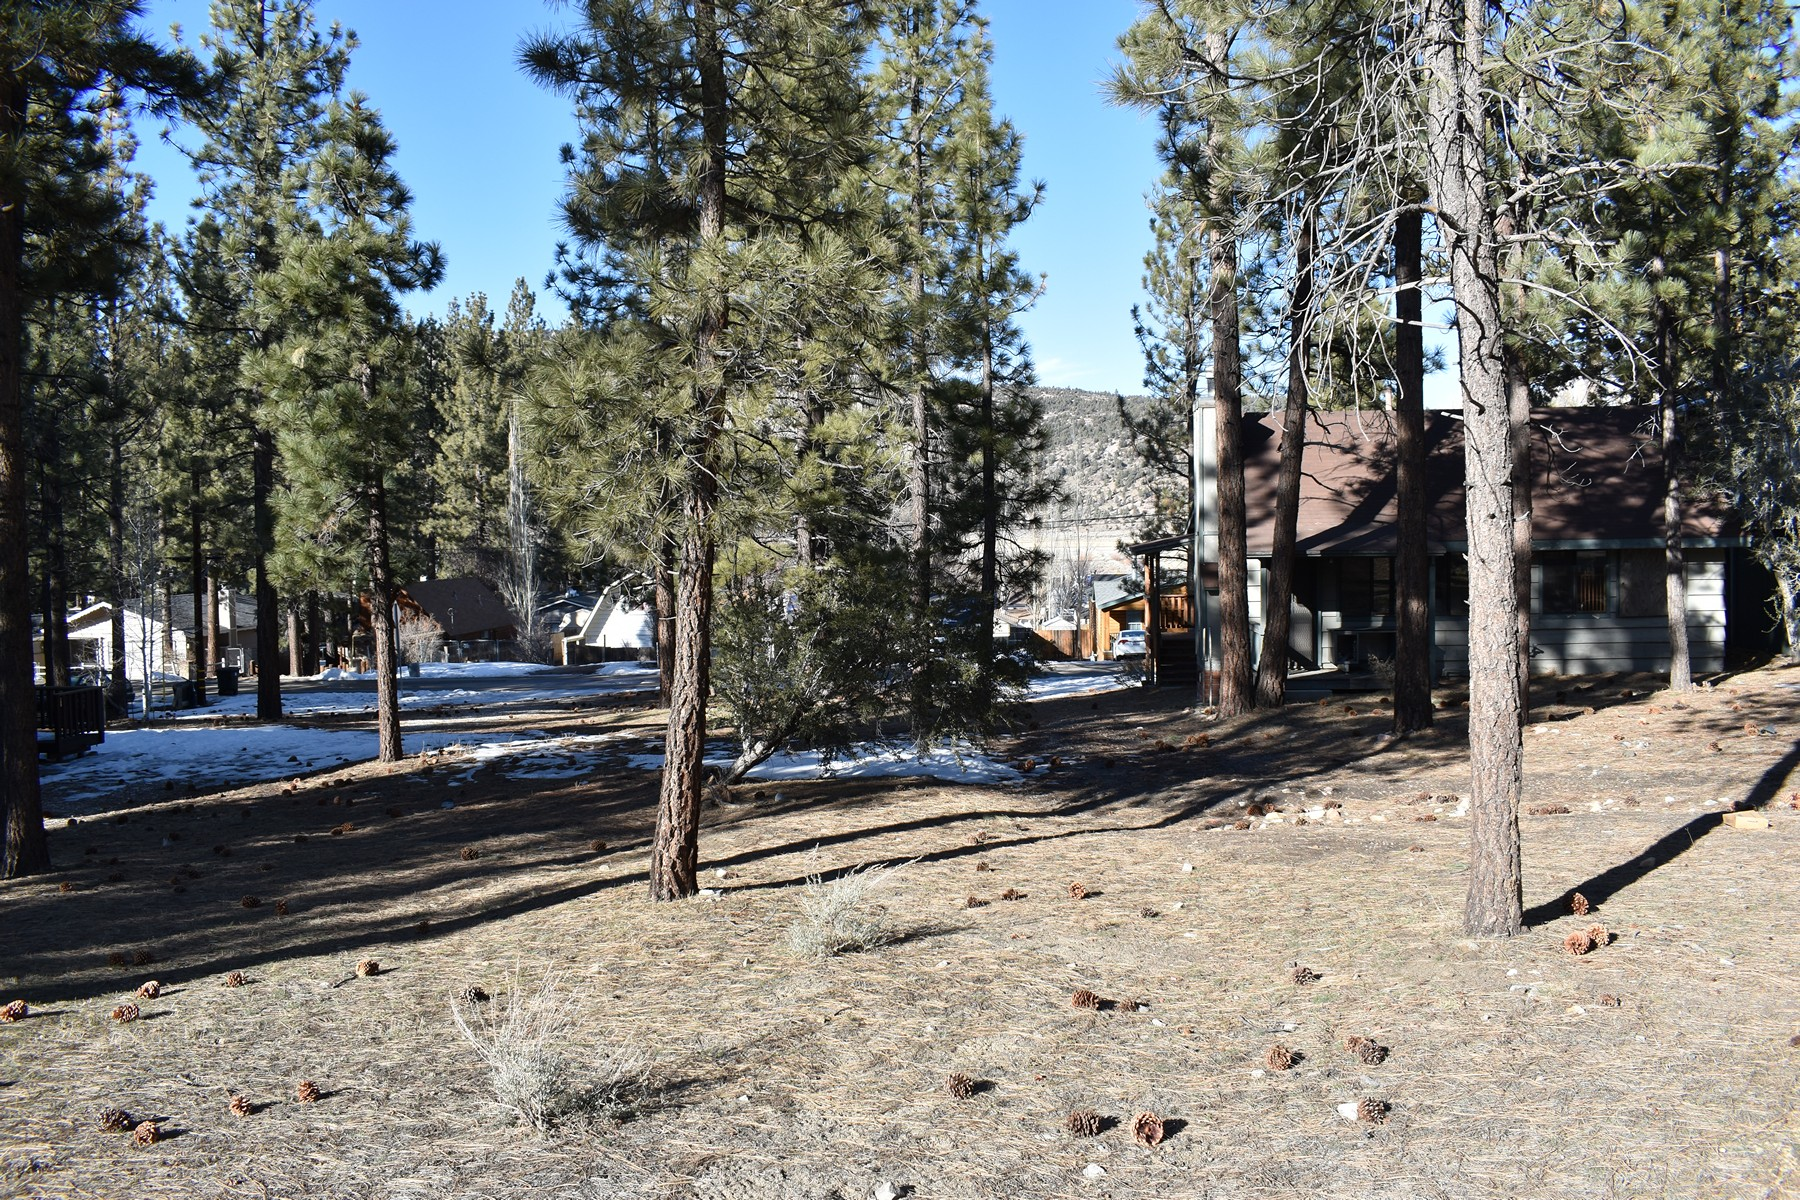 Land for Sale at 0 Country Club, Big Bear City, California 92314 0 Country Club Big Bear City, California 92314 United States